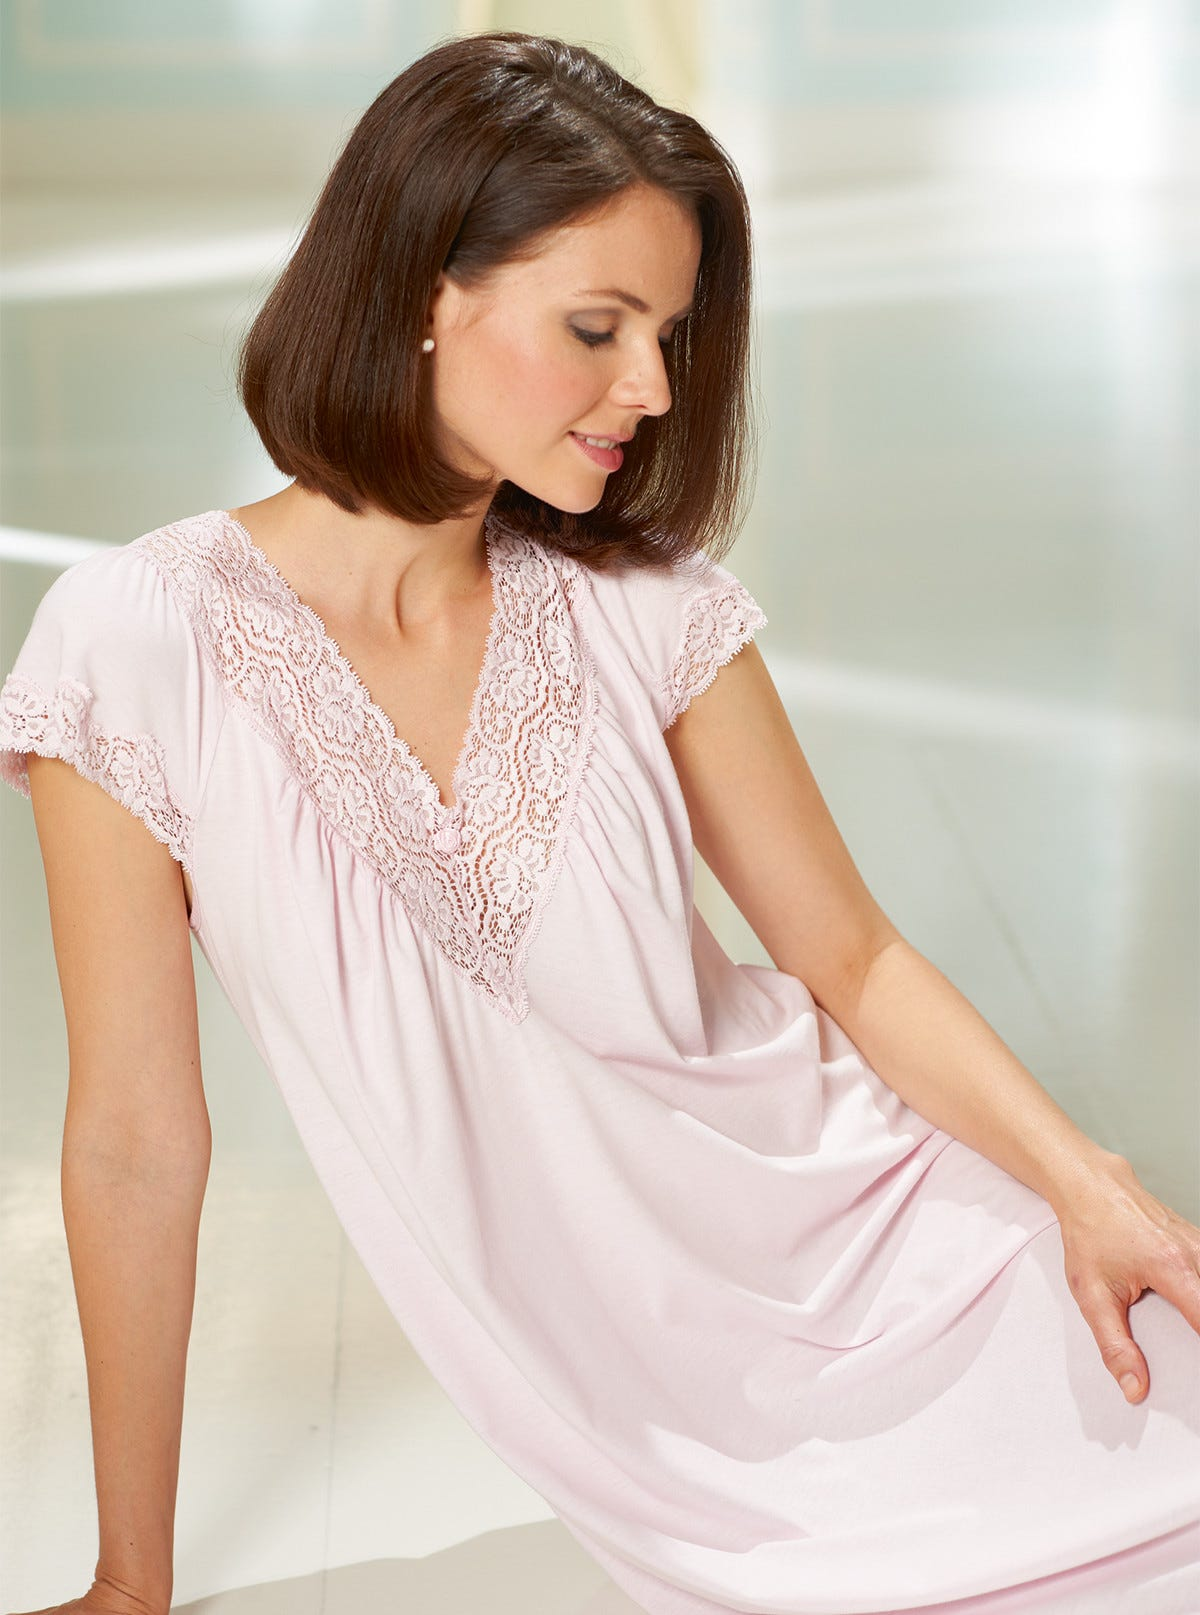 d1f3a89126c Pretty Sleeve Nightdress - Natural Jersey Cotton - Nightwear